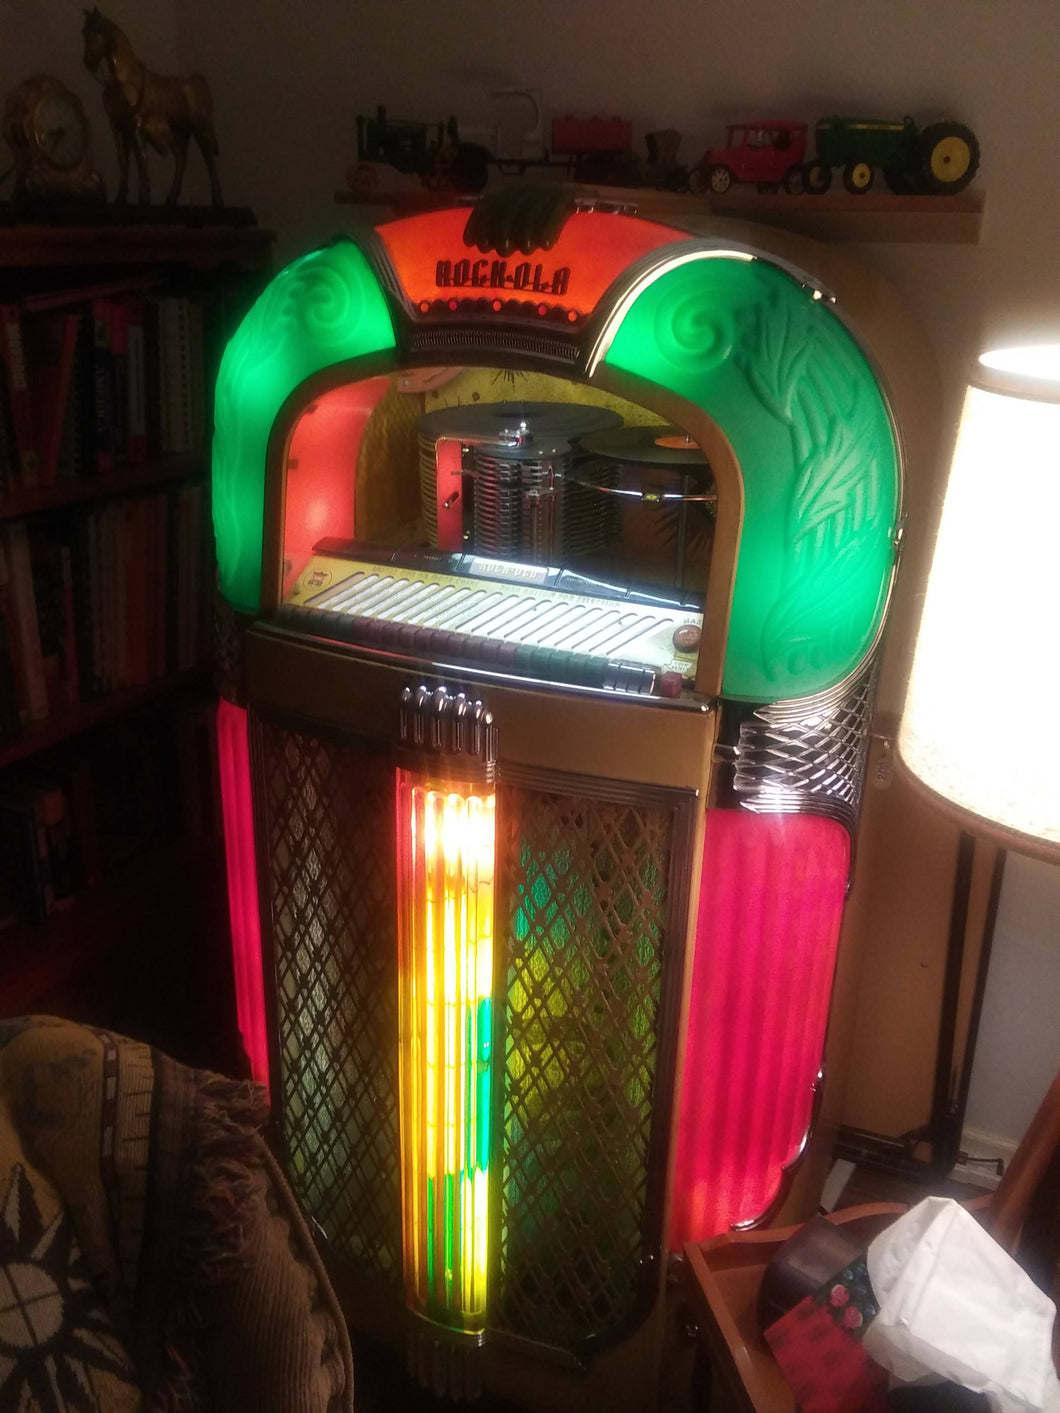 1948 Vintage 1428 Rockola Jukebox